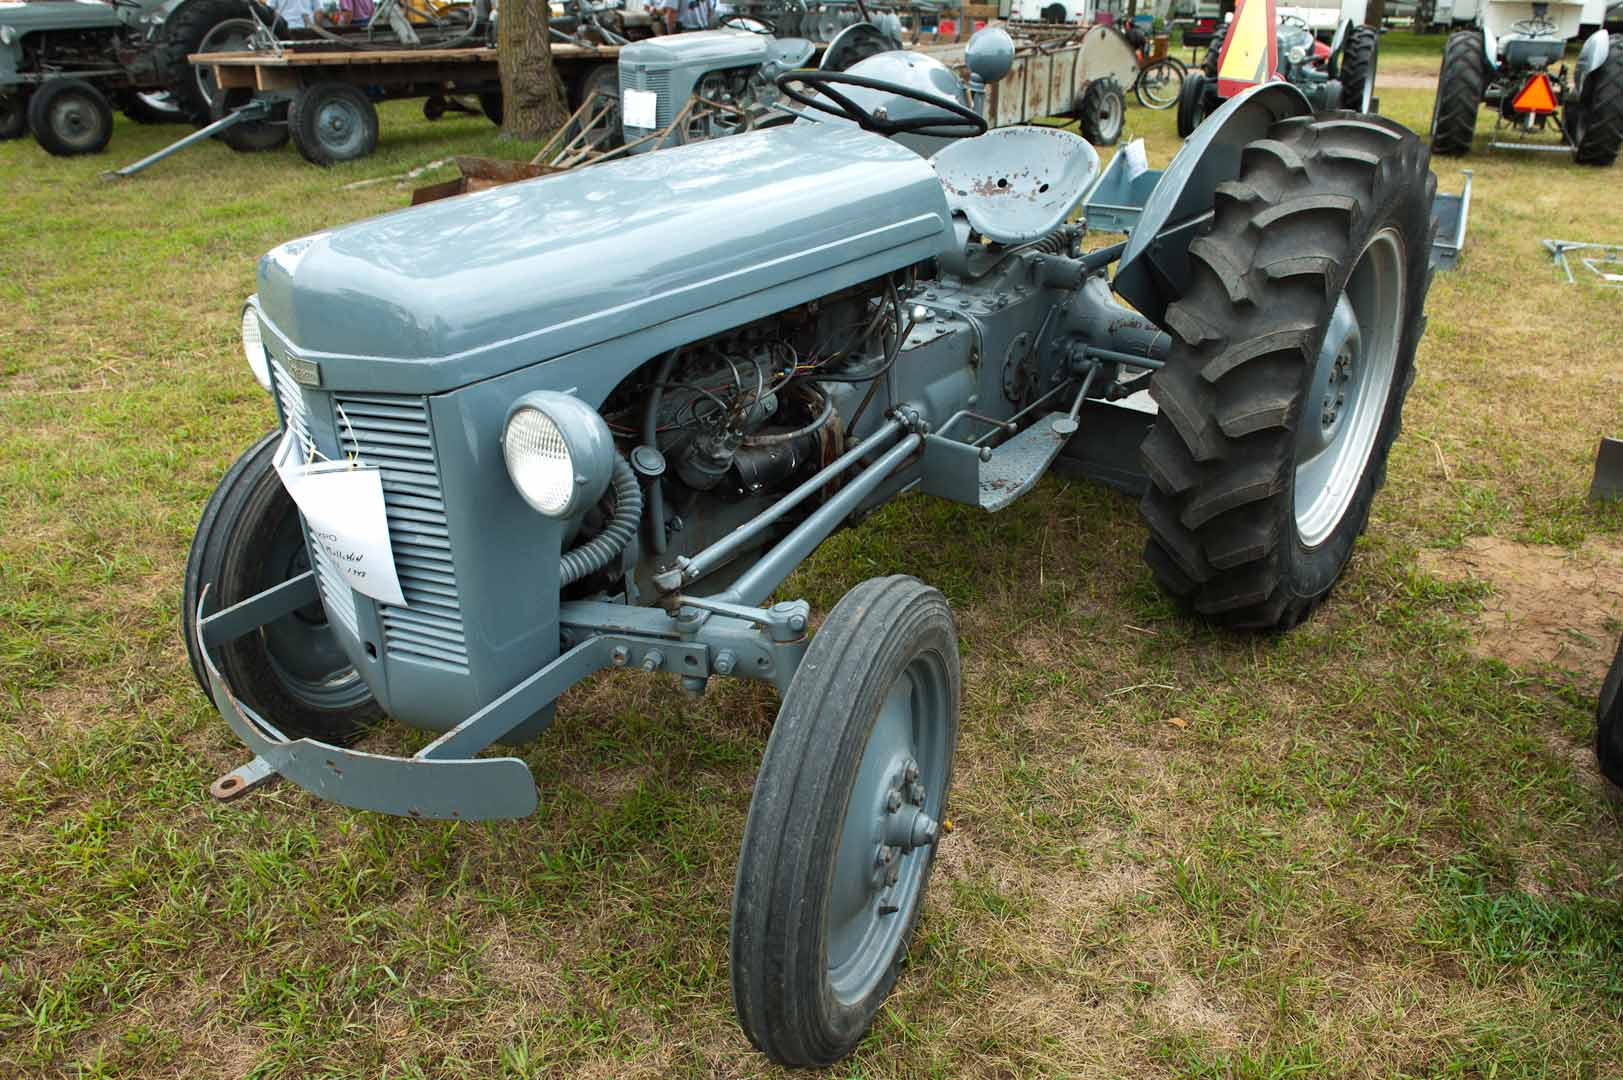 1948 TO-20 owned by Melvin Mullikin of Packwood, IA. SN TO-27. This tractor was made on the first or second day of production of the TO-20.